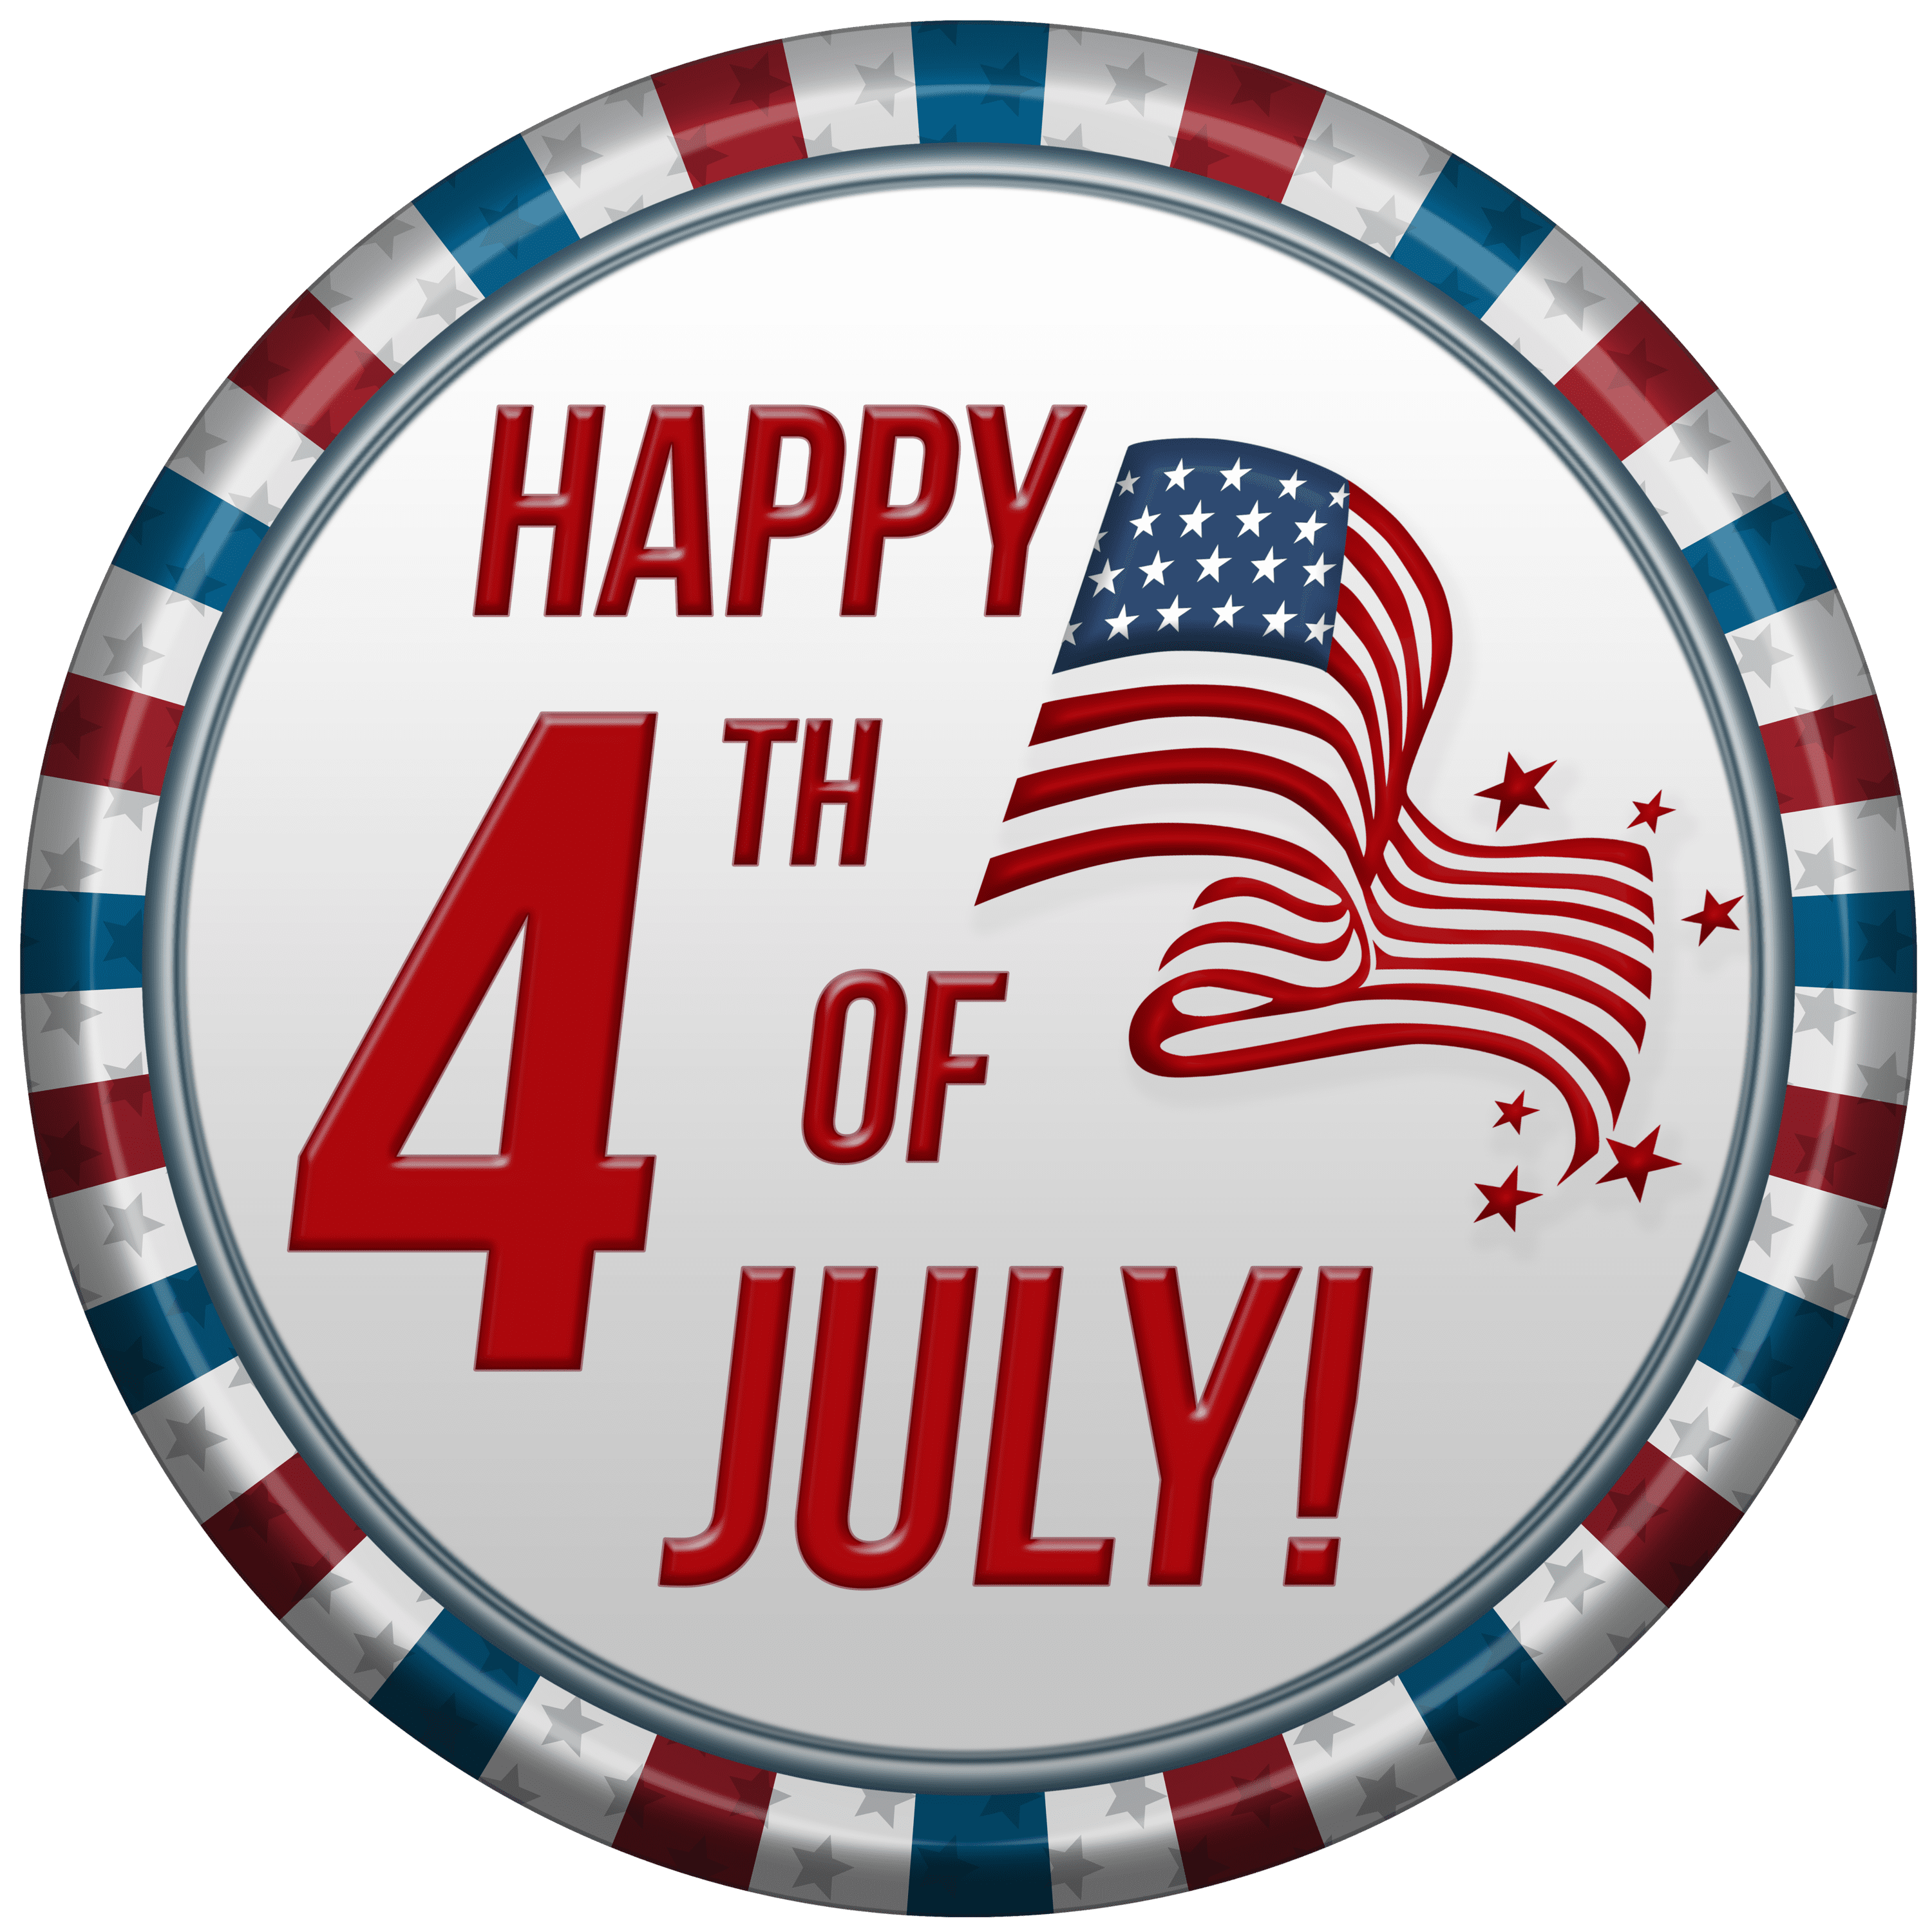 Happy 4th Of July USA Clip Art PNG Image.